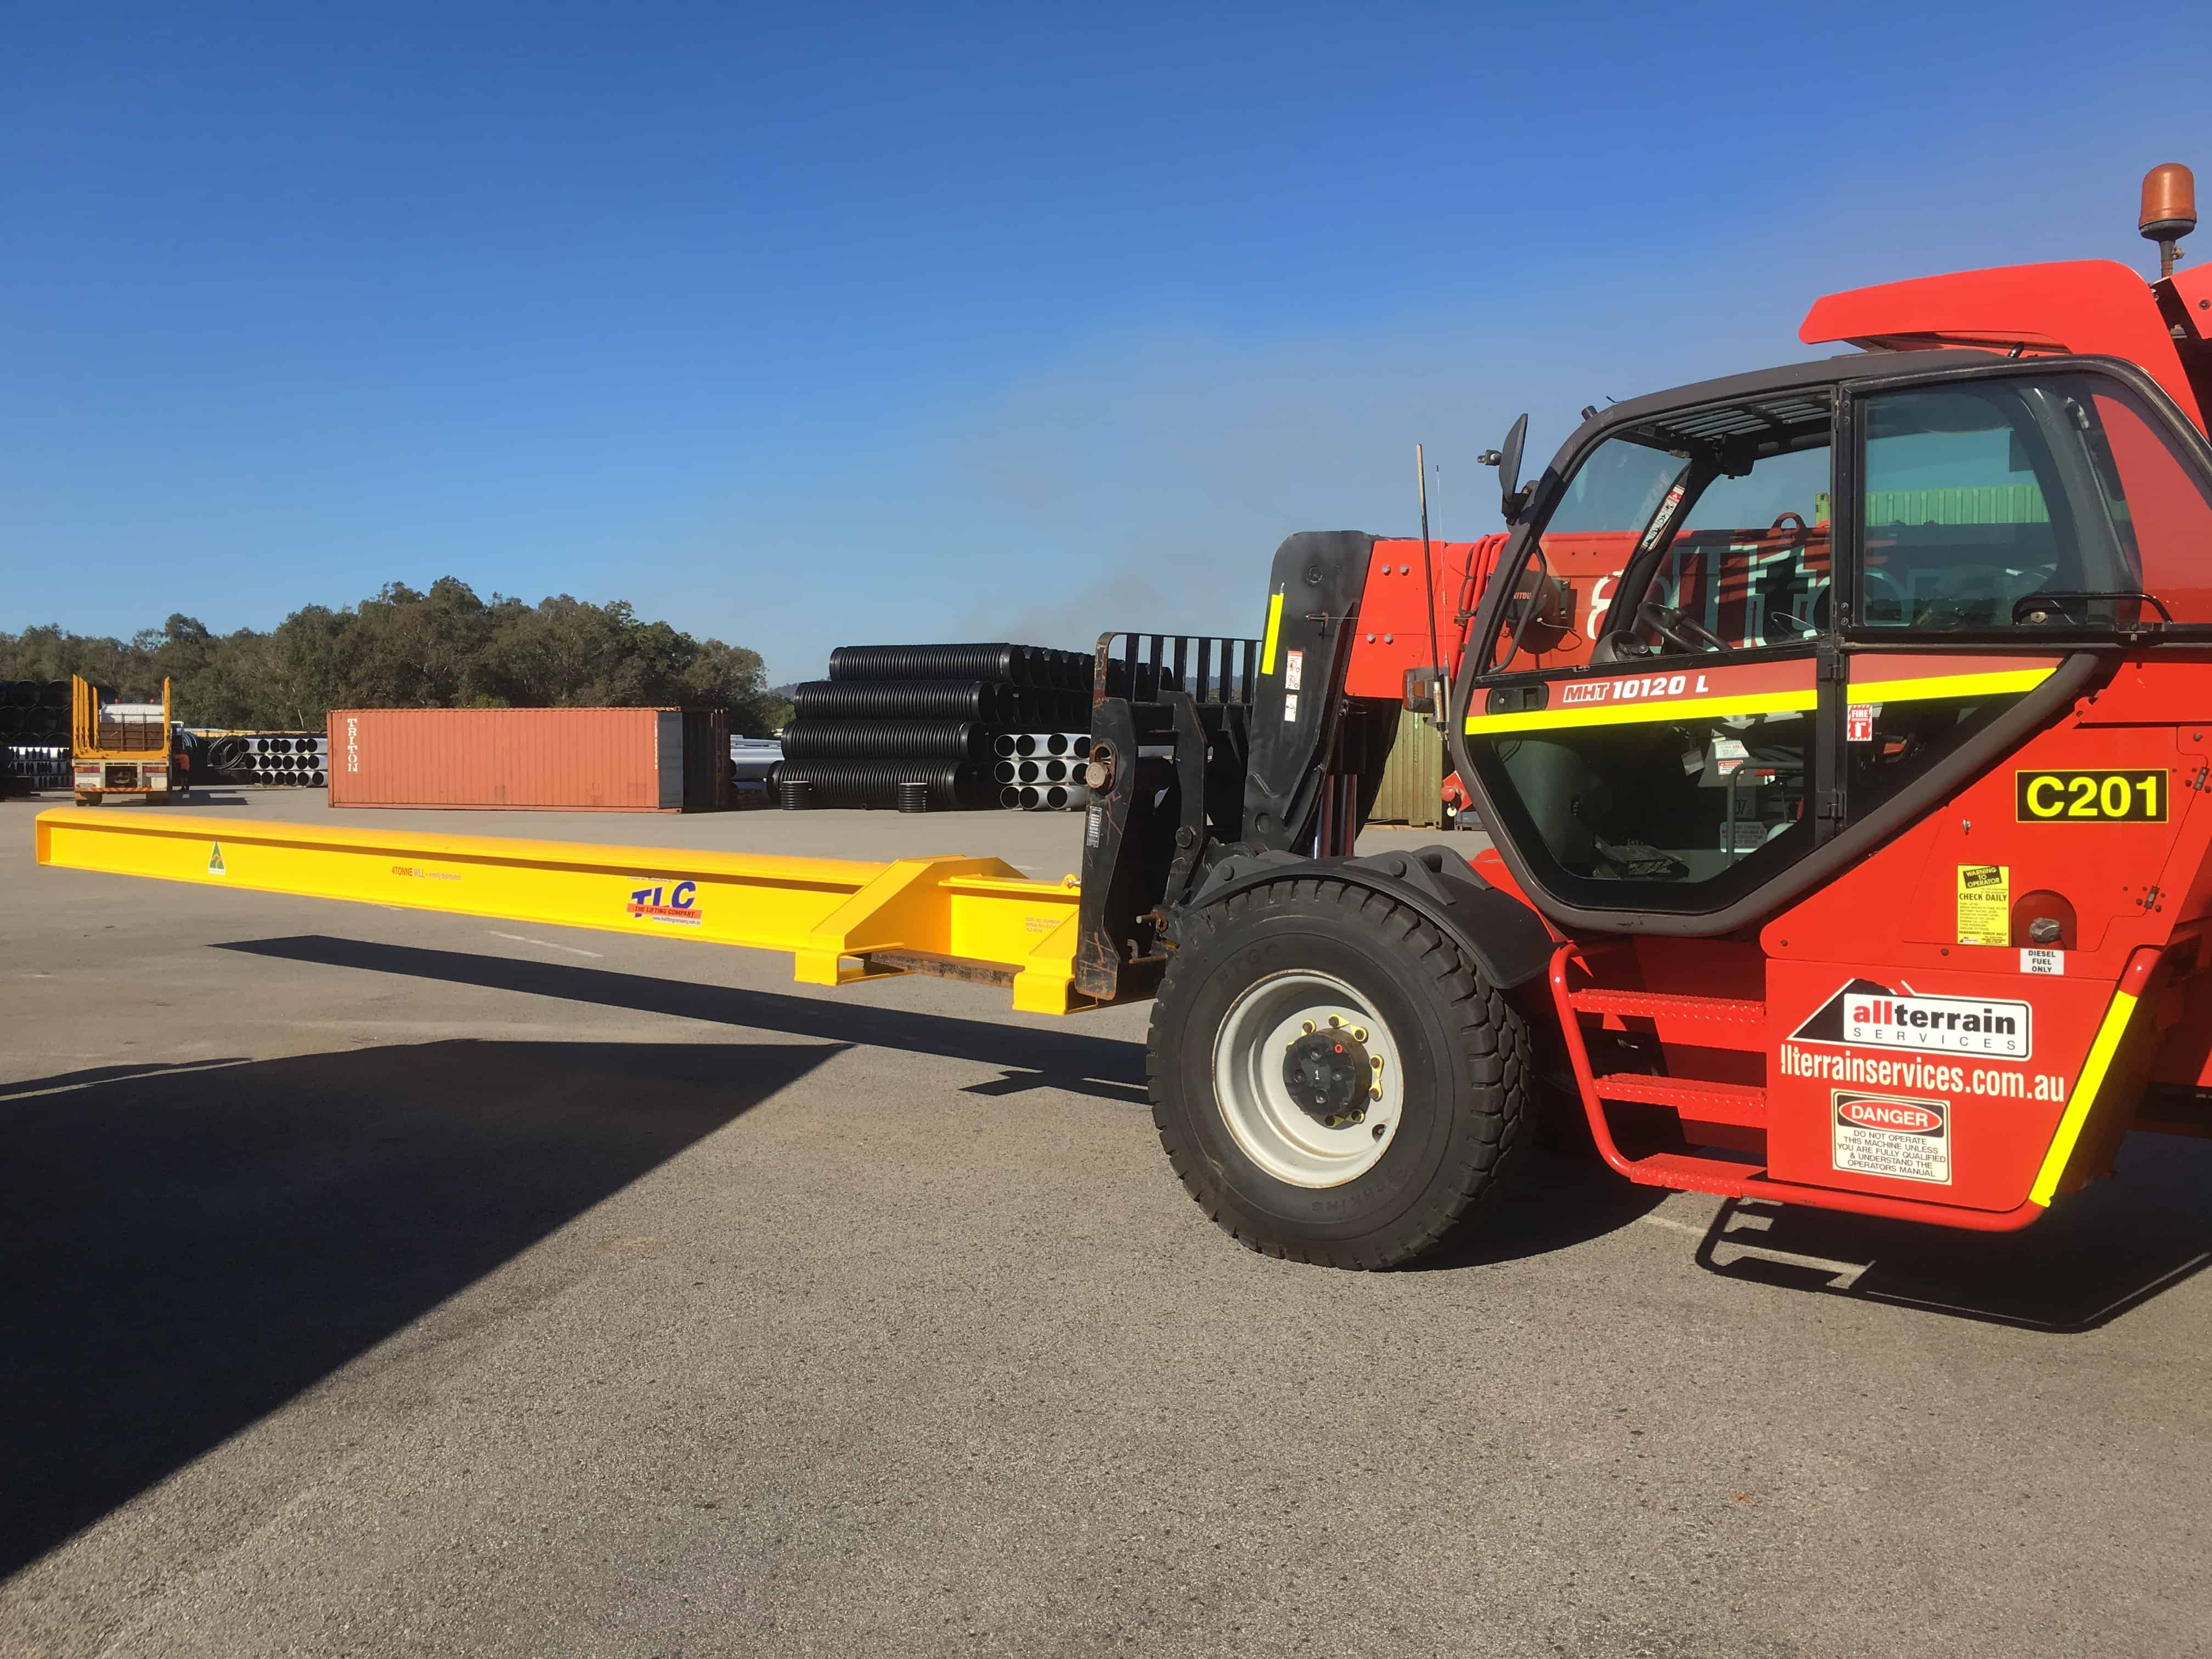 allterrain-services-rough-terrain-forklift-services-telehandler-for-sale